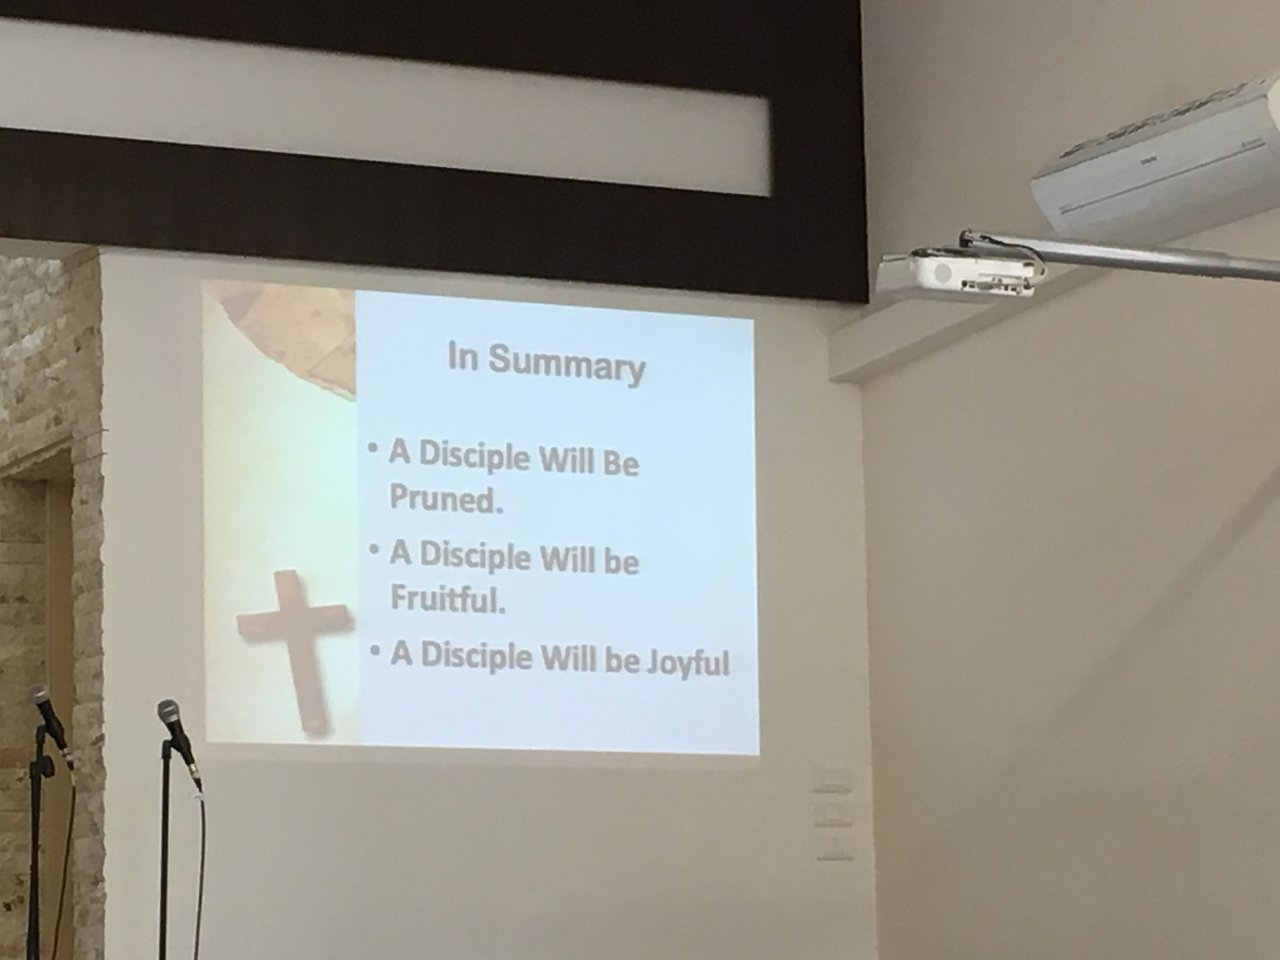 A good message on discipleship! | Photo taken by Linley V